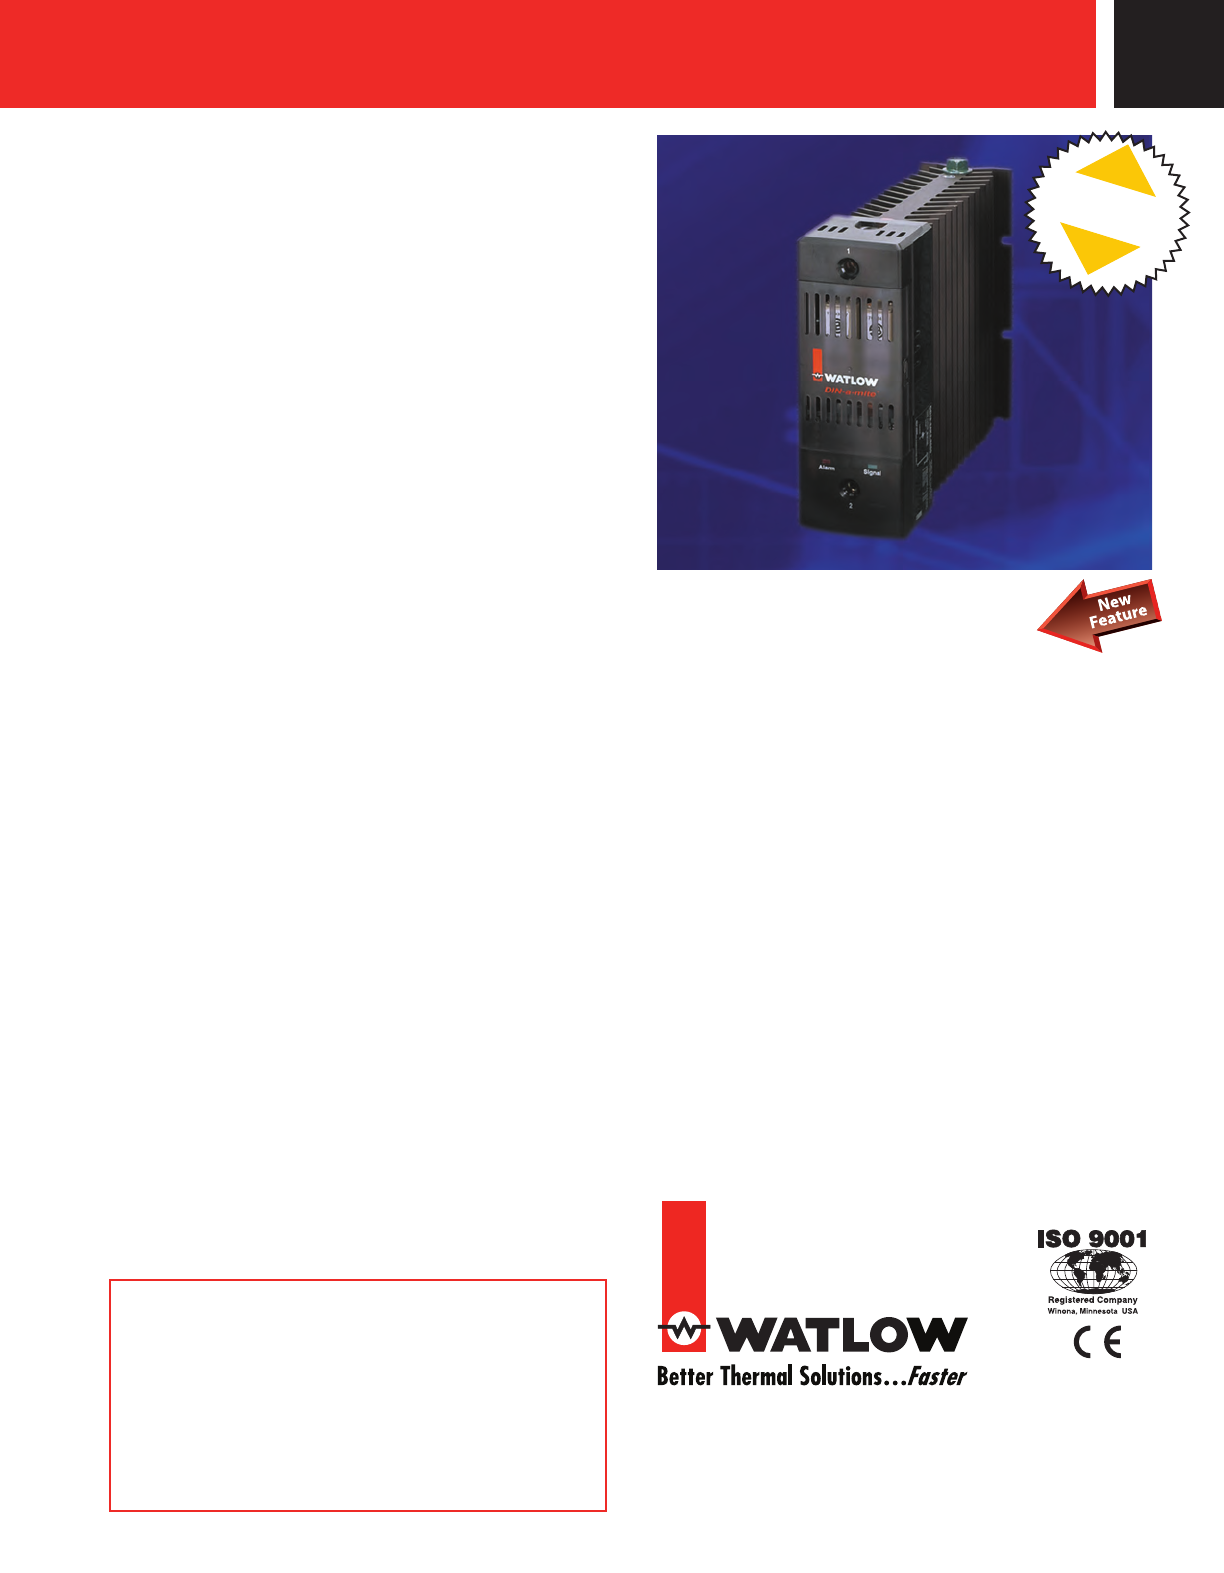 Watlow Electric Din A Mite Scr Power Controller Users Manual D Pics Photos Control Circuit